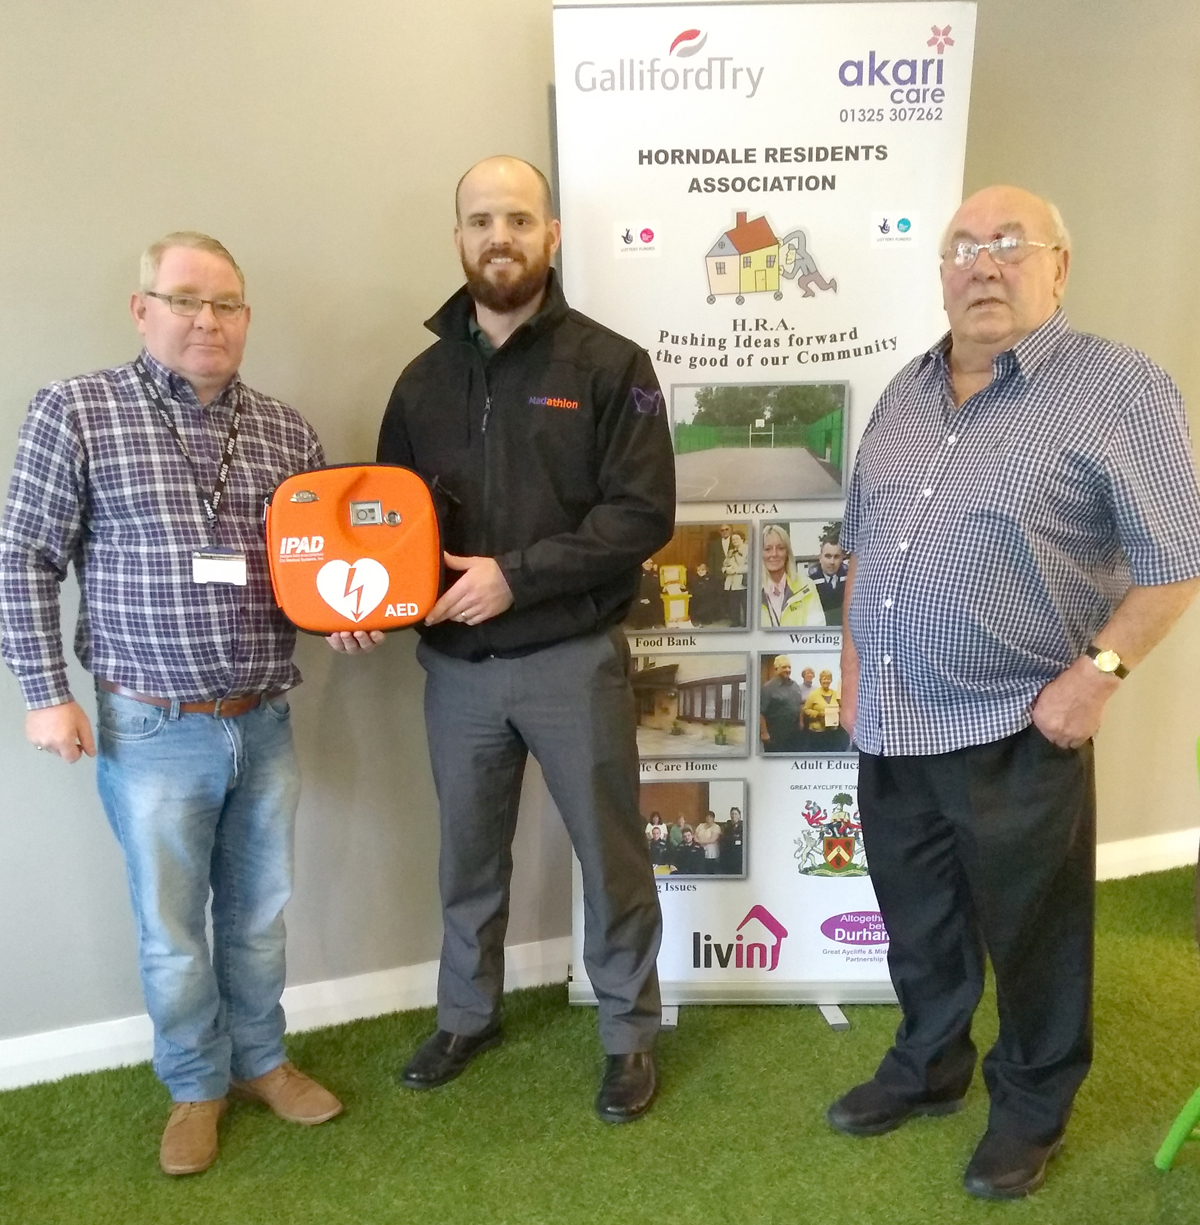 Madathon Donate Defibrillator